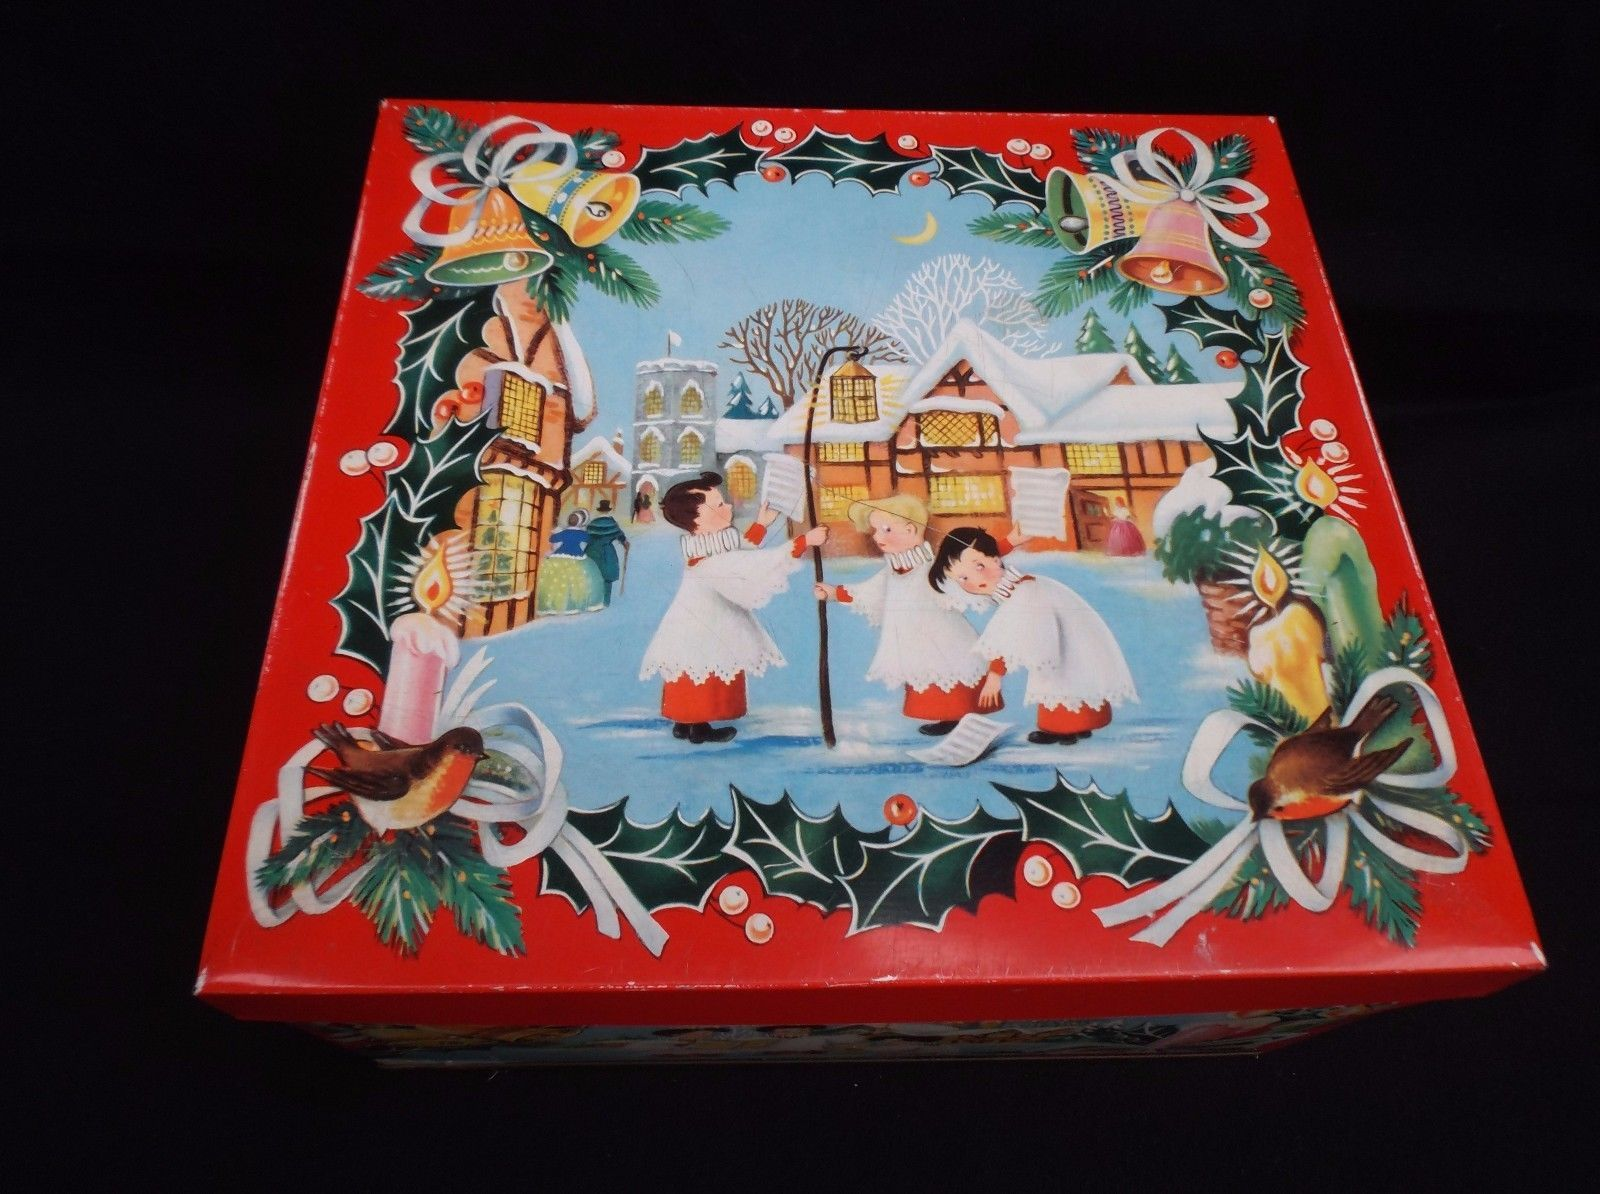 LARGE VINTAGE 1960u0027s HUNTLEY U0026 PALMERS CHRISTMAS BISCUIT TIN STORAGE TIN .